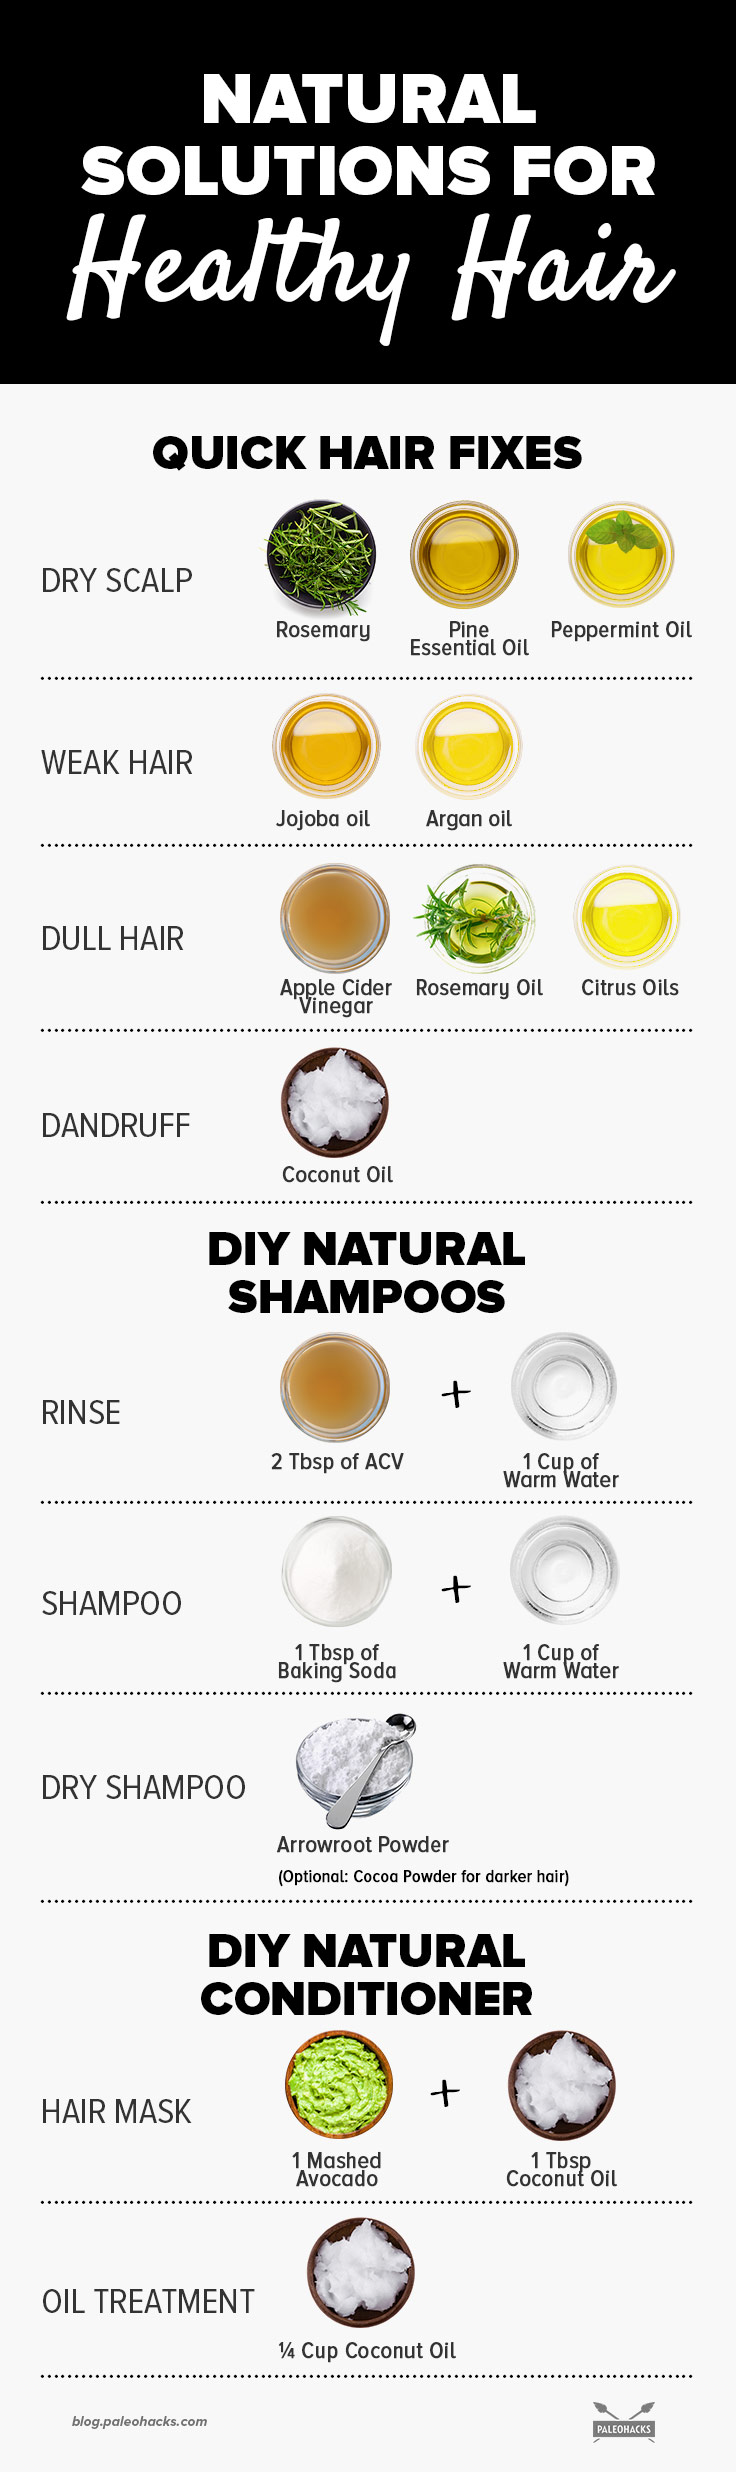 The-Healthy-Hair-Guide-infog2.jpg